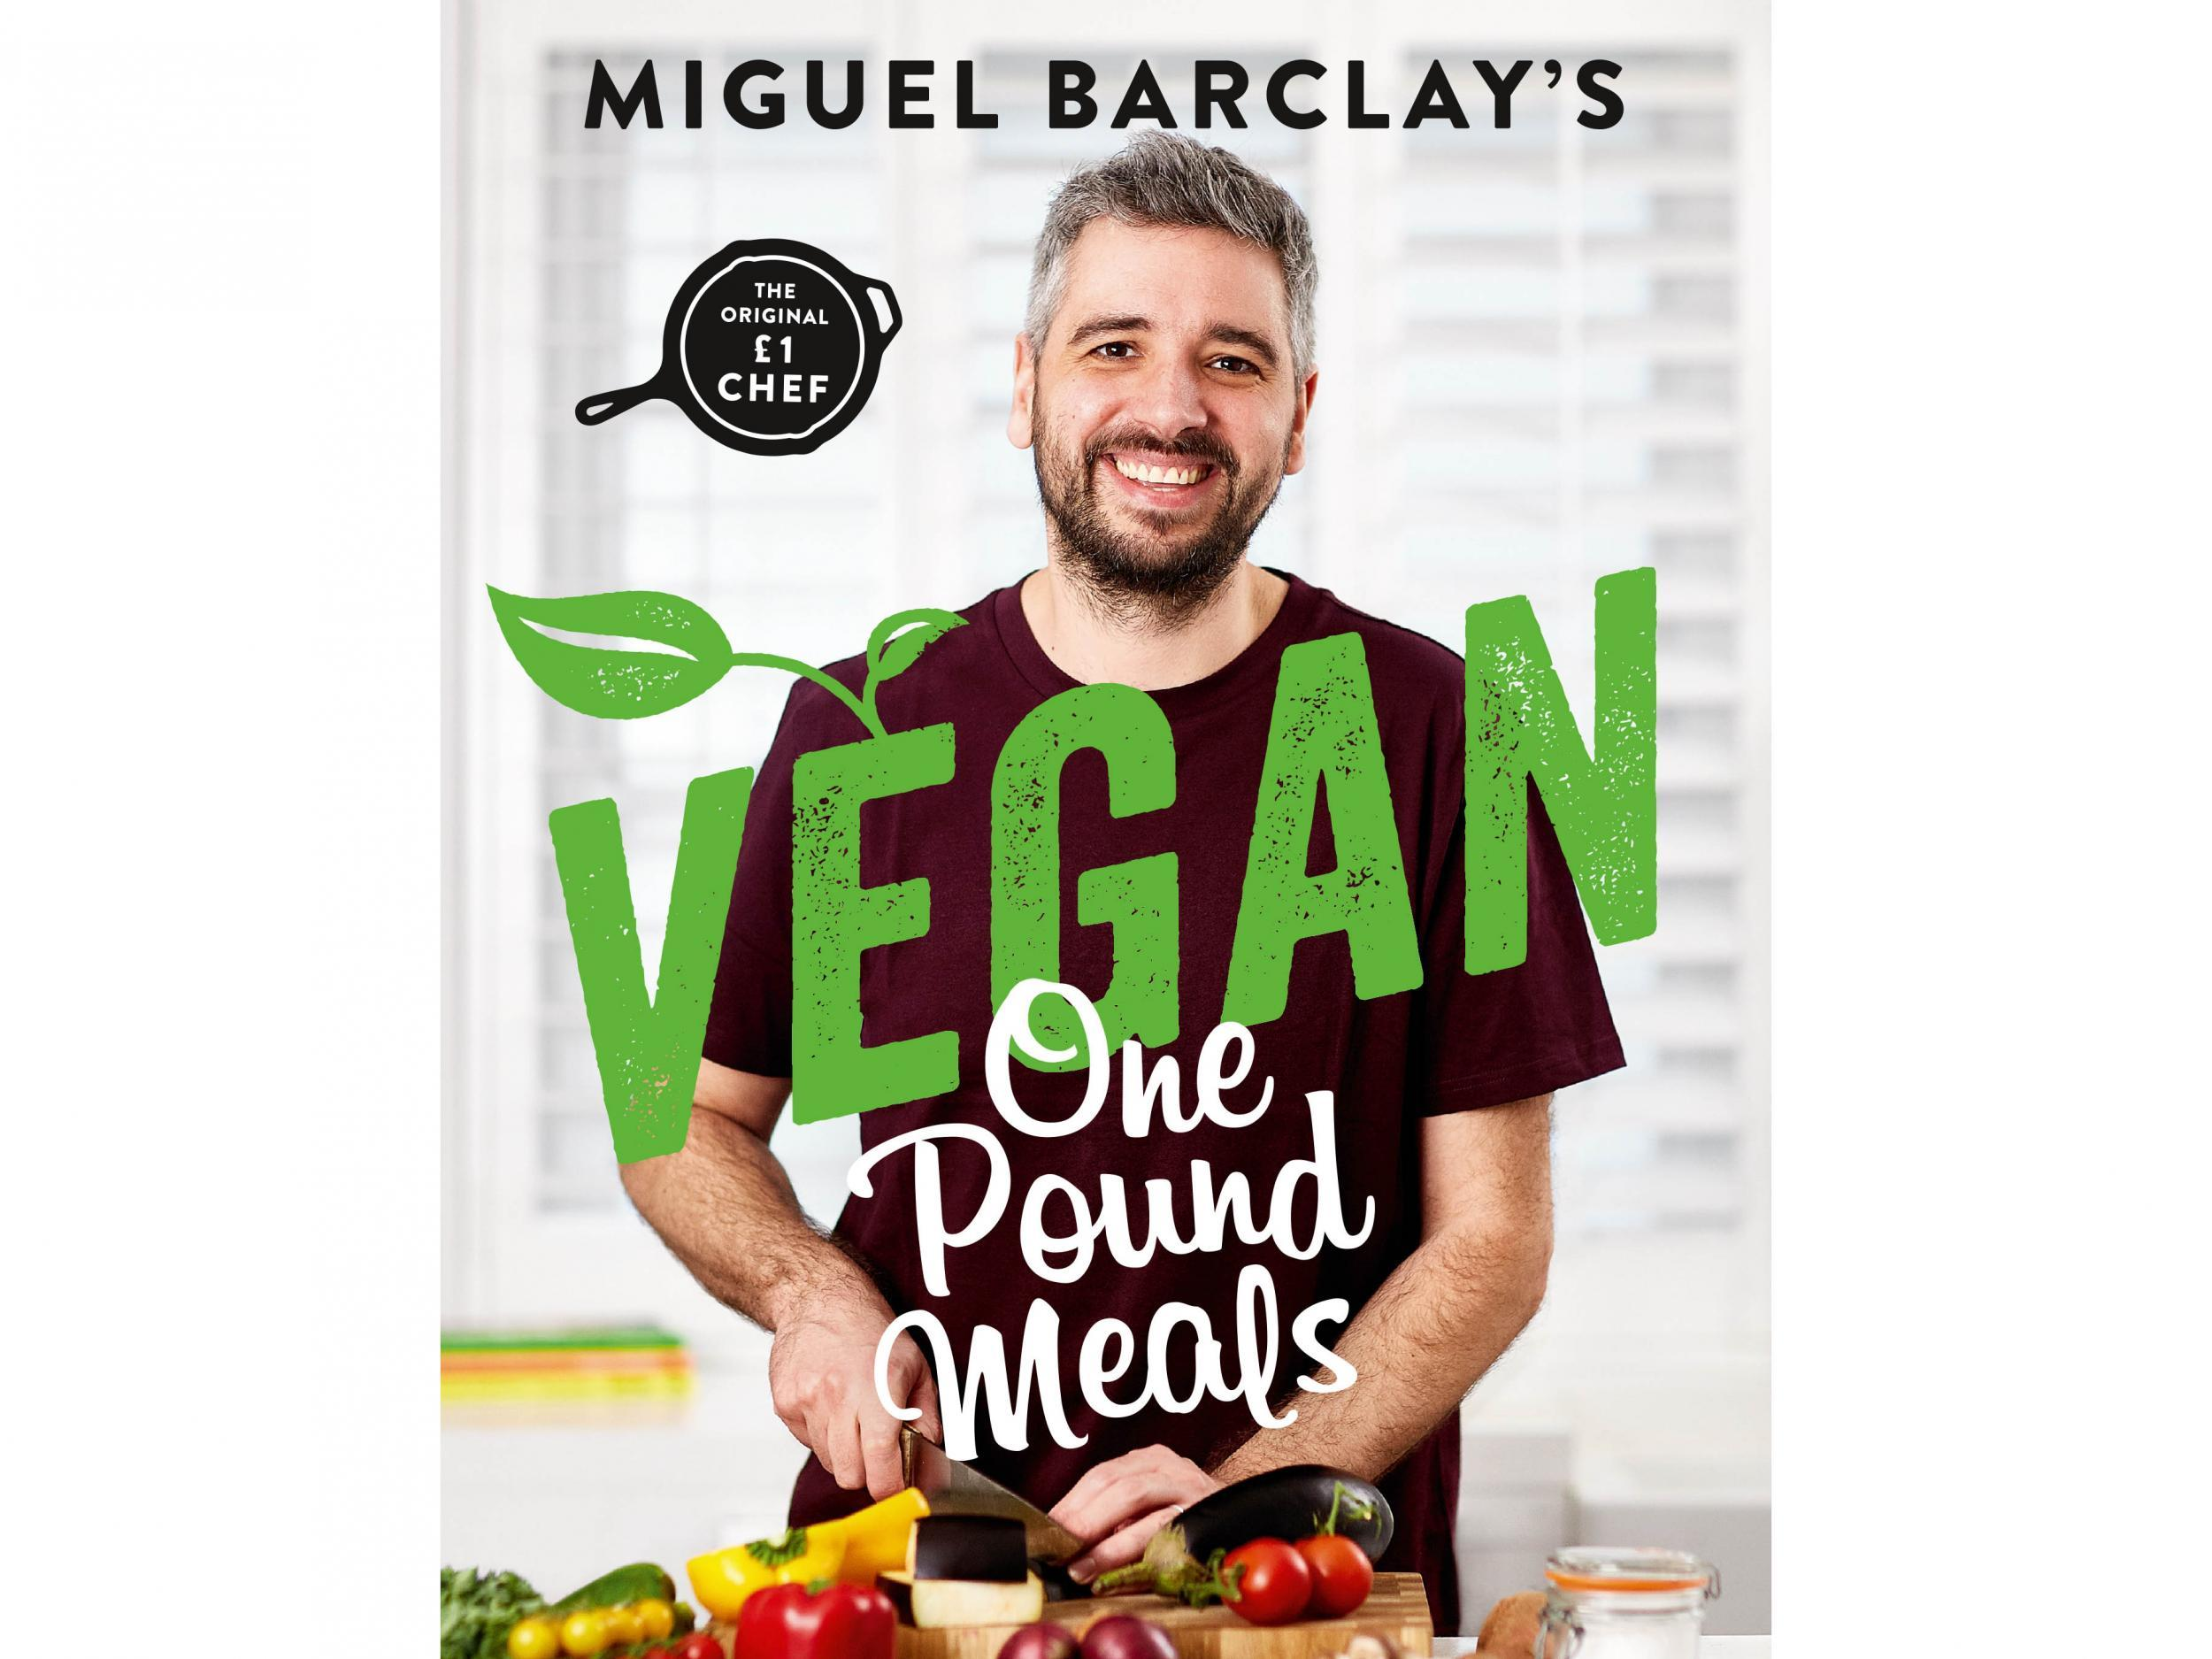 'Vegan One Pound Meals: Delicious budget-friendly plant-based recipes all for £1 per person' by Miguel Barclay. Published by Headline Home: £10.75, Amazon